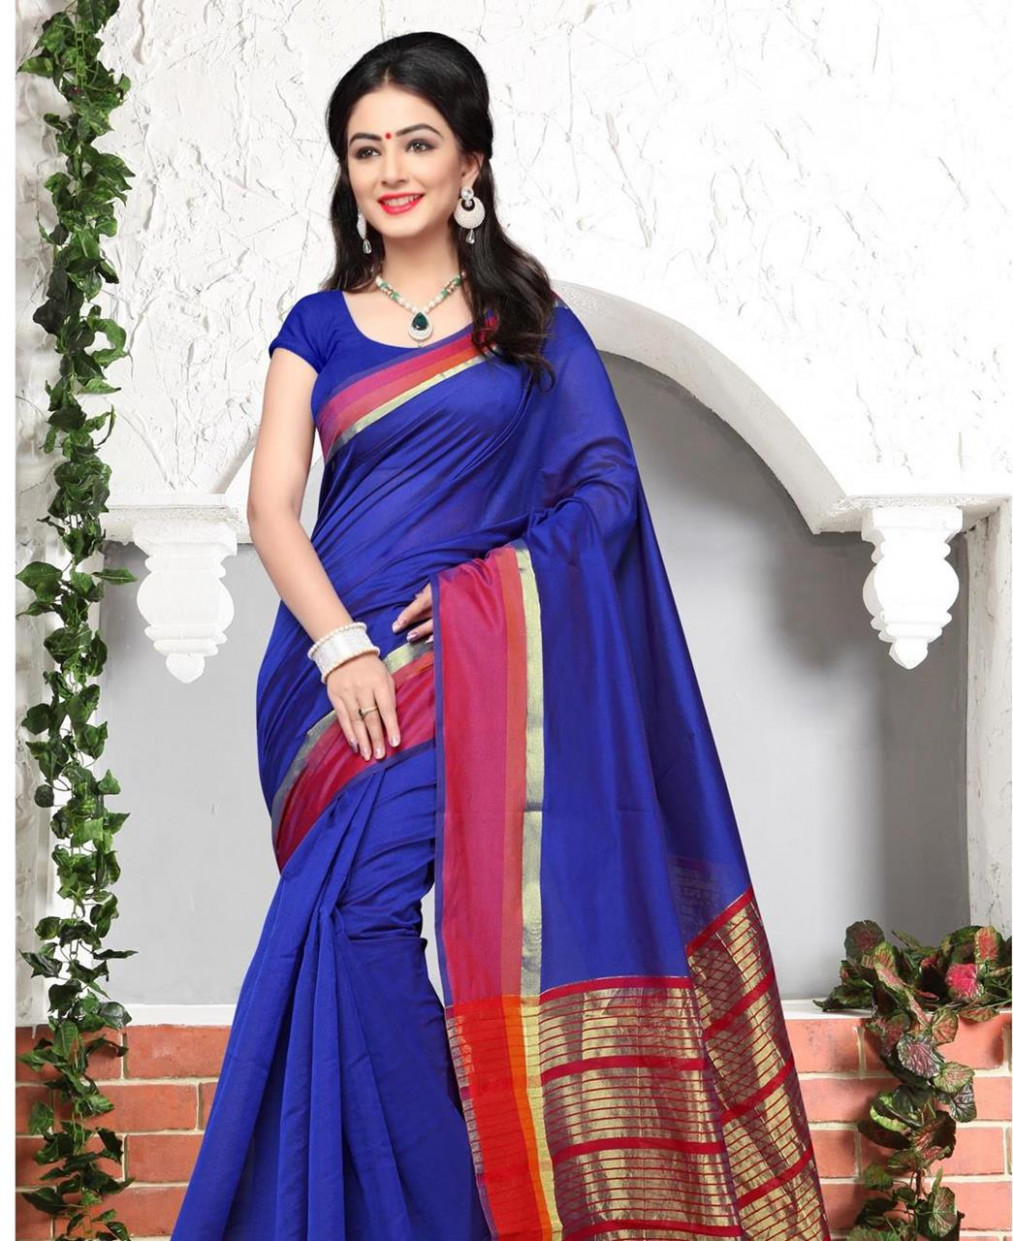 Buy Splendid Royal Blue Casual Saree [105311] at 17.55 (AUD)